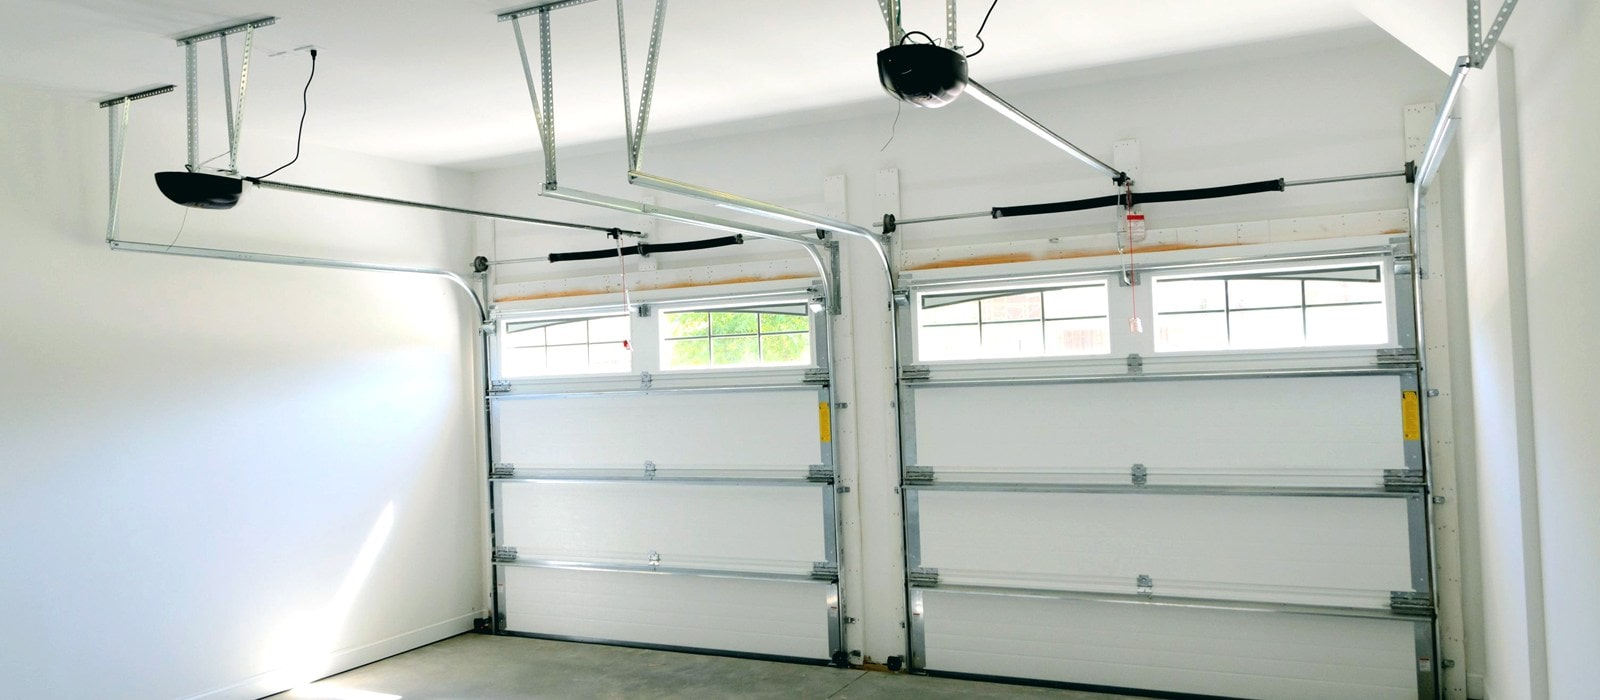 Garage Door Repair Service & Garage Door Services | Garage Door Repair Carefree AZ